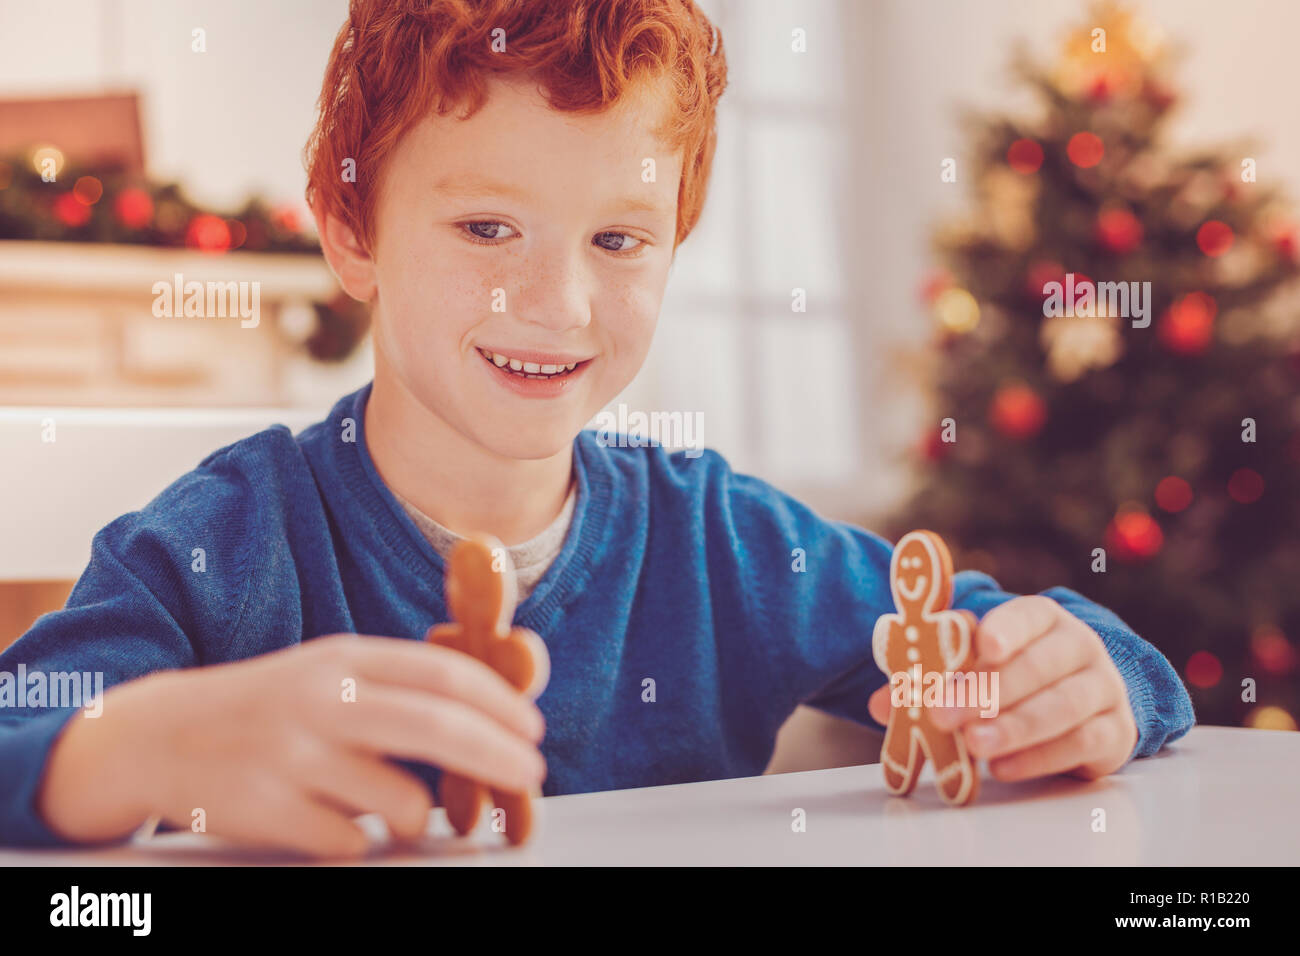 Upbeat preteen boy playing with two gingerbread men - Stock Image